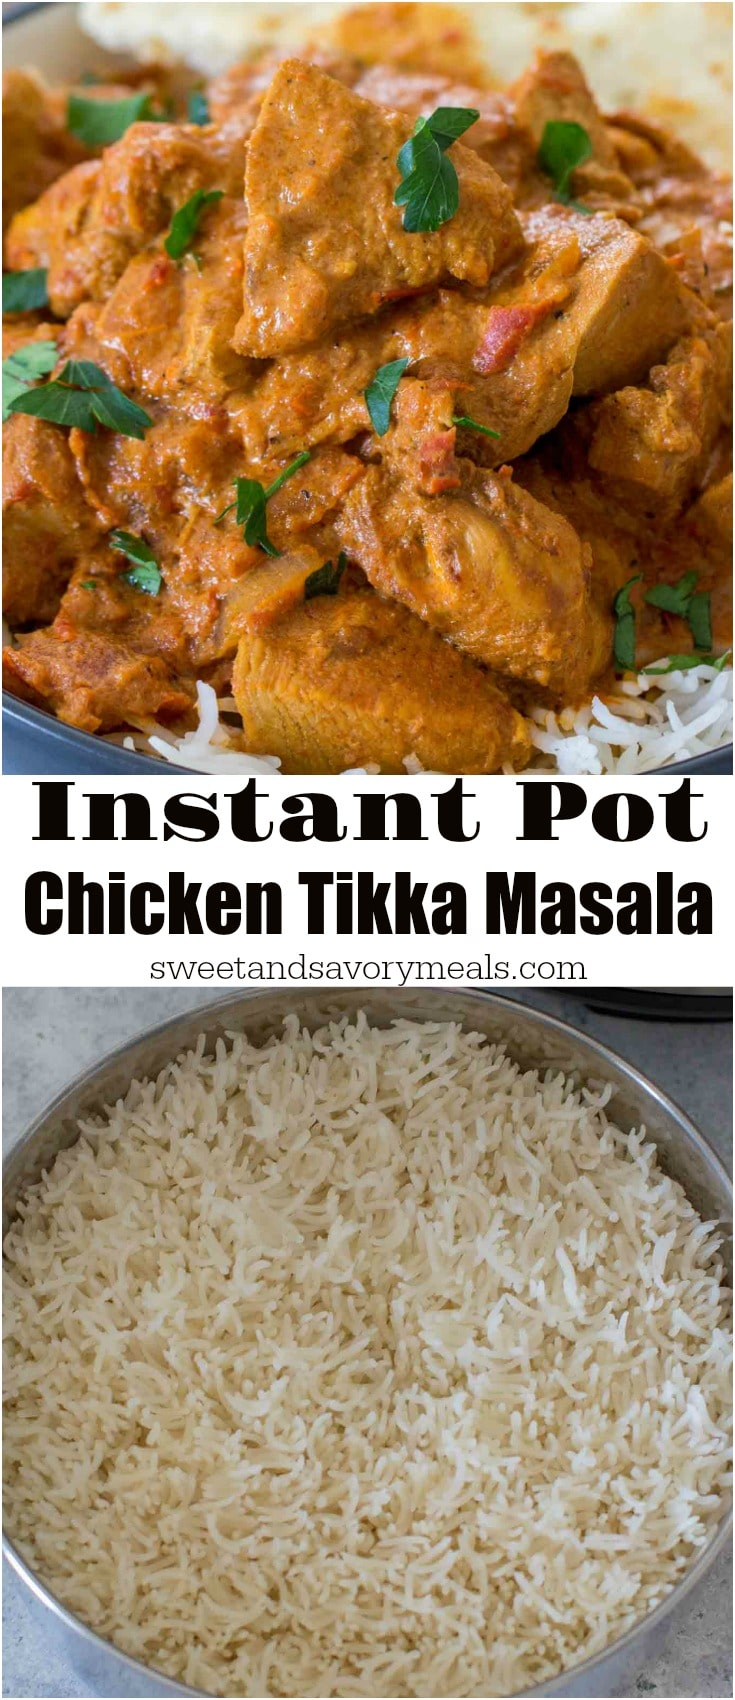 Instant Pot Chicken Tikka Masala with Basmati Rice